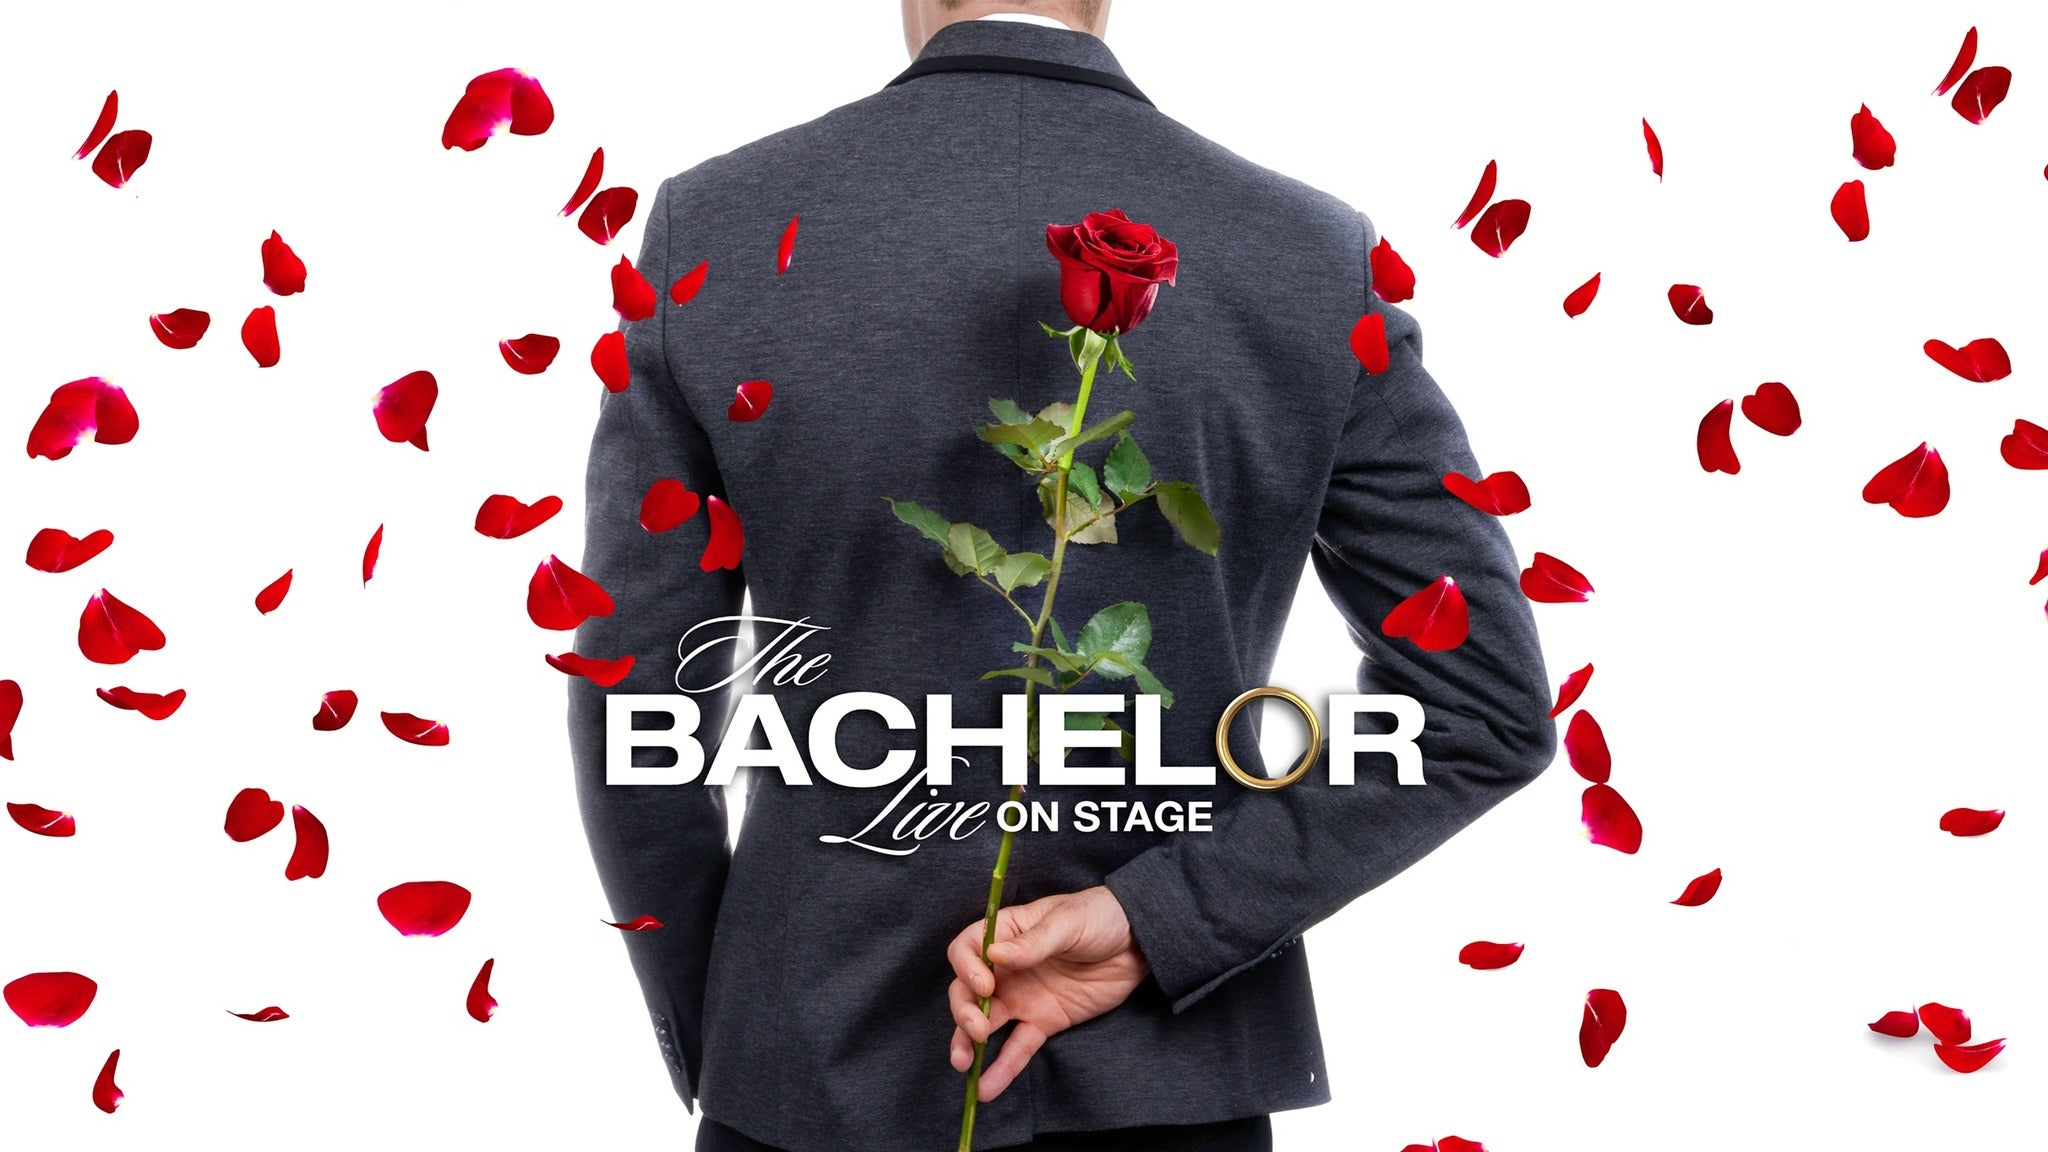 The Bachelor Live on Stage at Mohegan Sun Arena